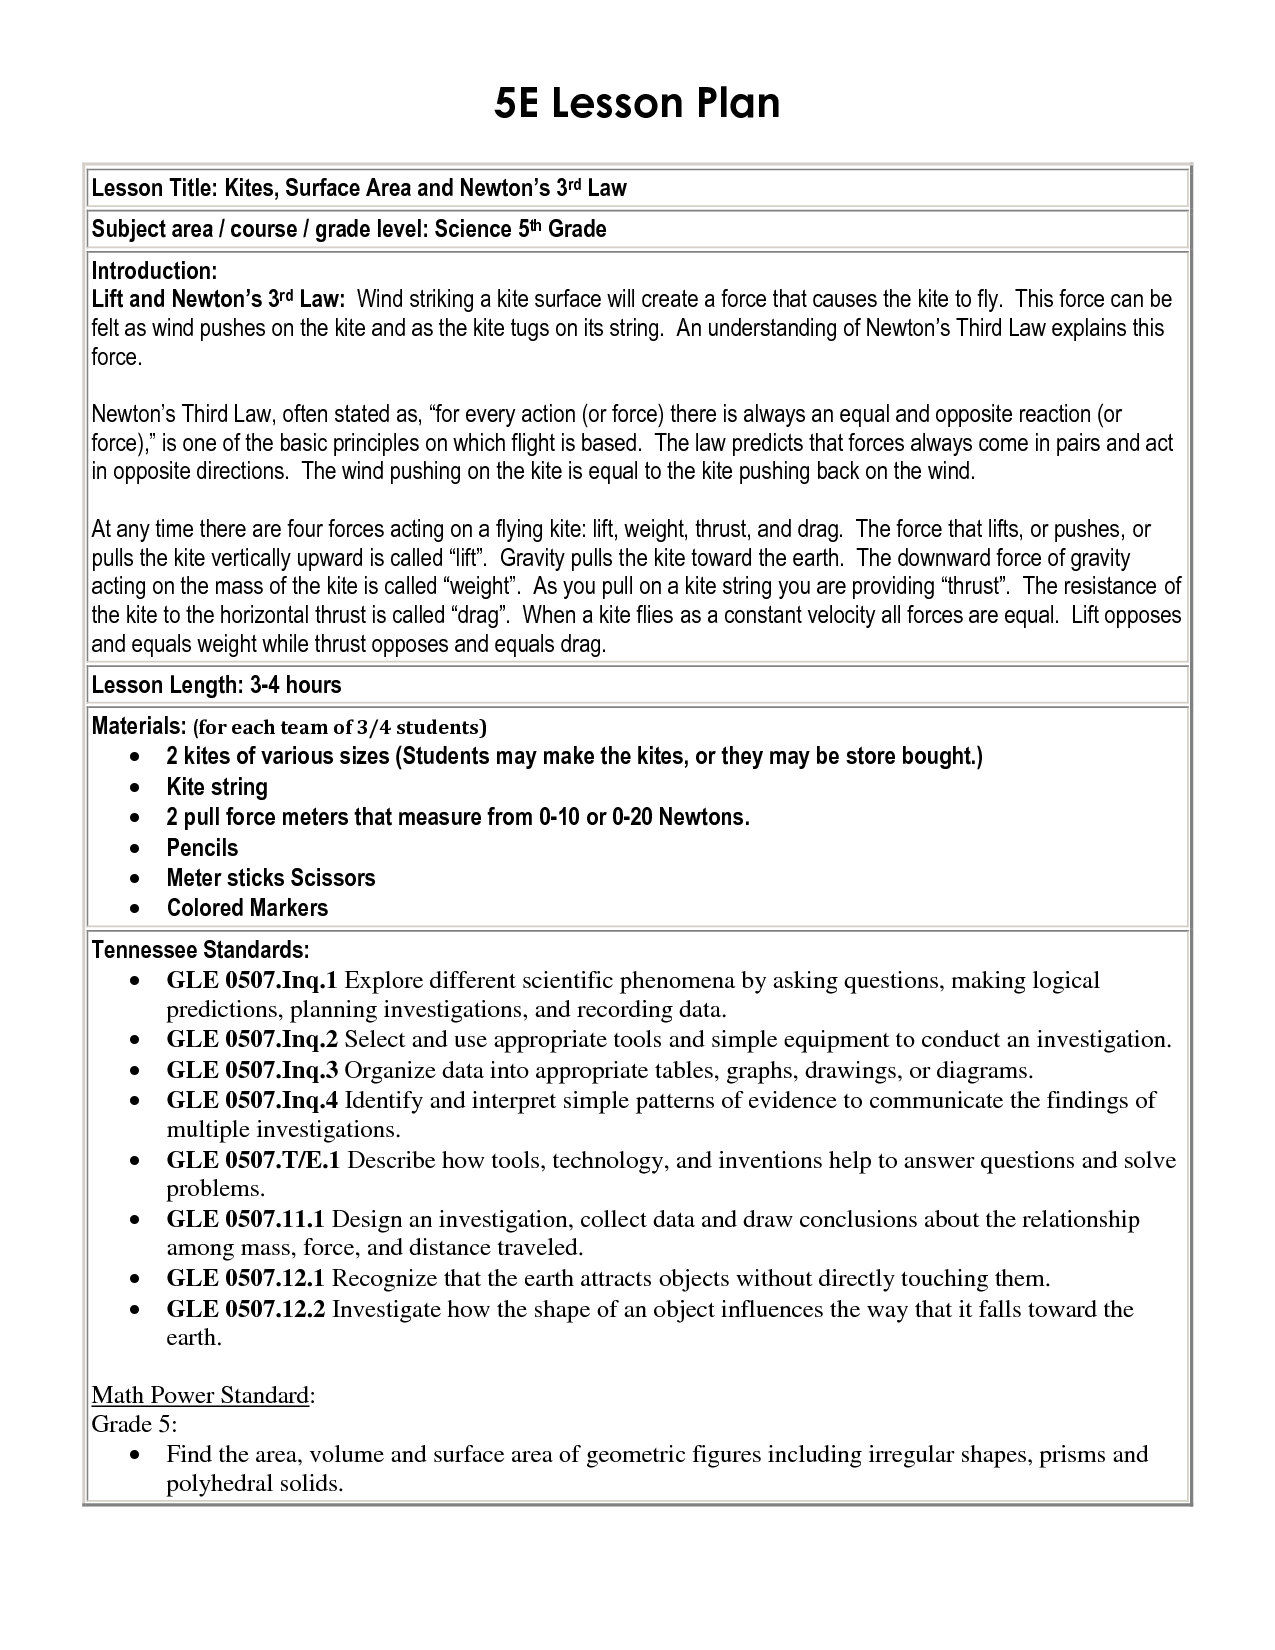 gradual release model science lesson plan template